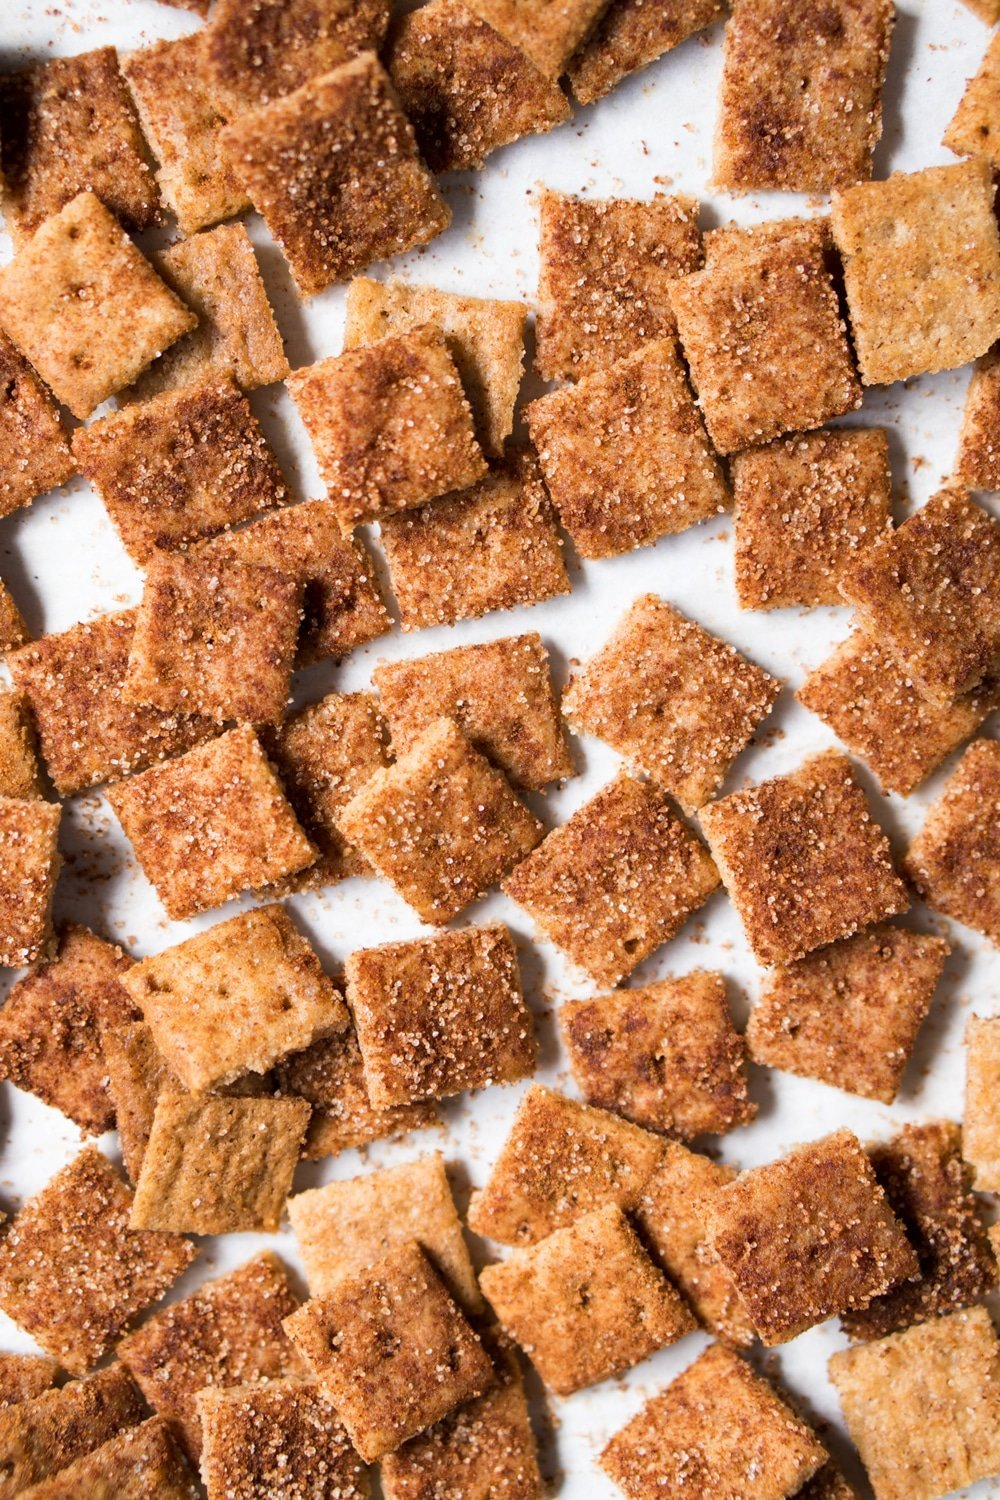 Gluten Free & Keto Cinnamon Toast Crunch Cereal 🥛 Now Extra